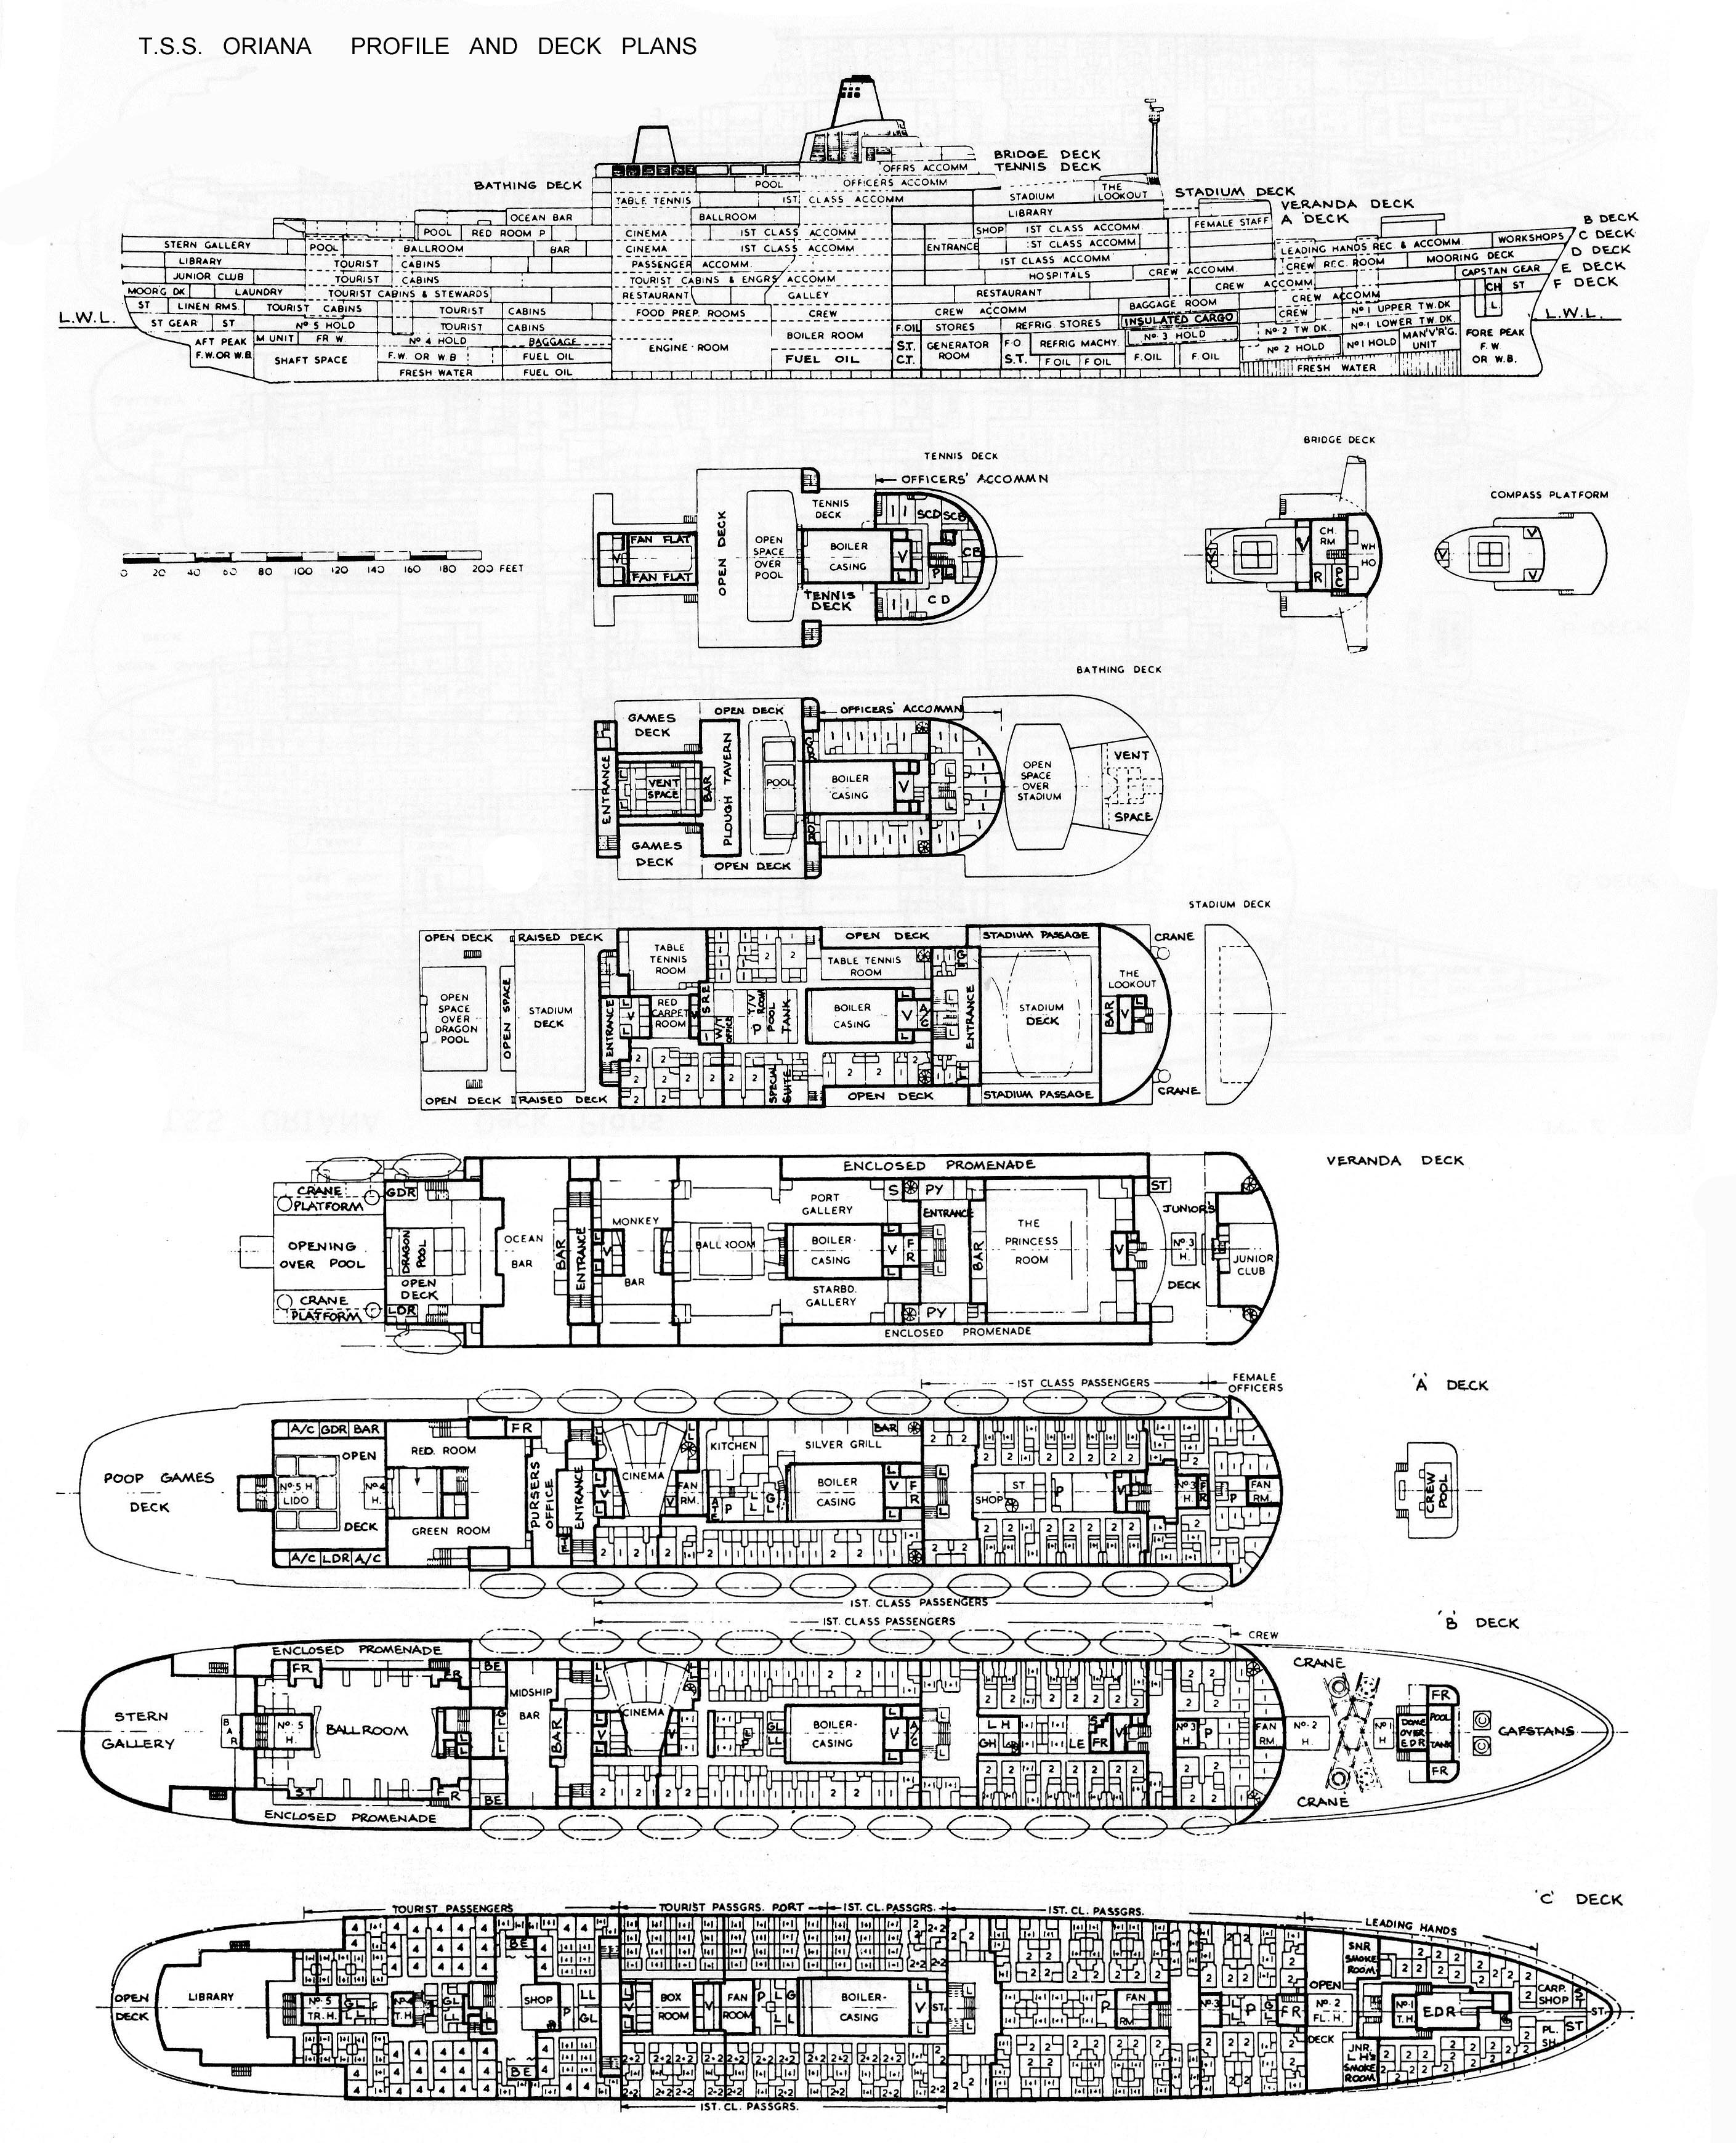 Building ss oriana plans and more c deck reveals the very first ever court cabins enabling four inside court cabins to be slightly staggered and have slender windows thus a view and baanklon Gallery